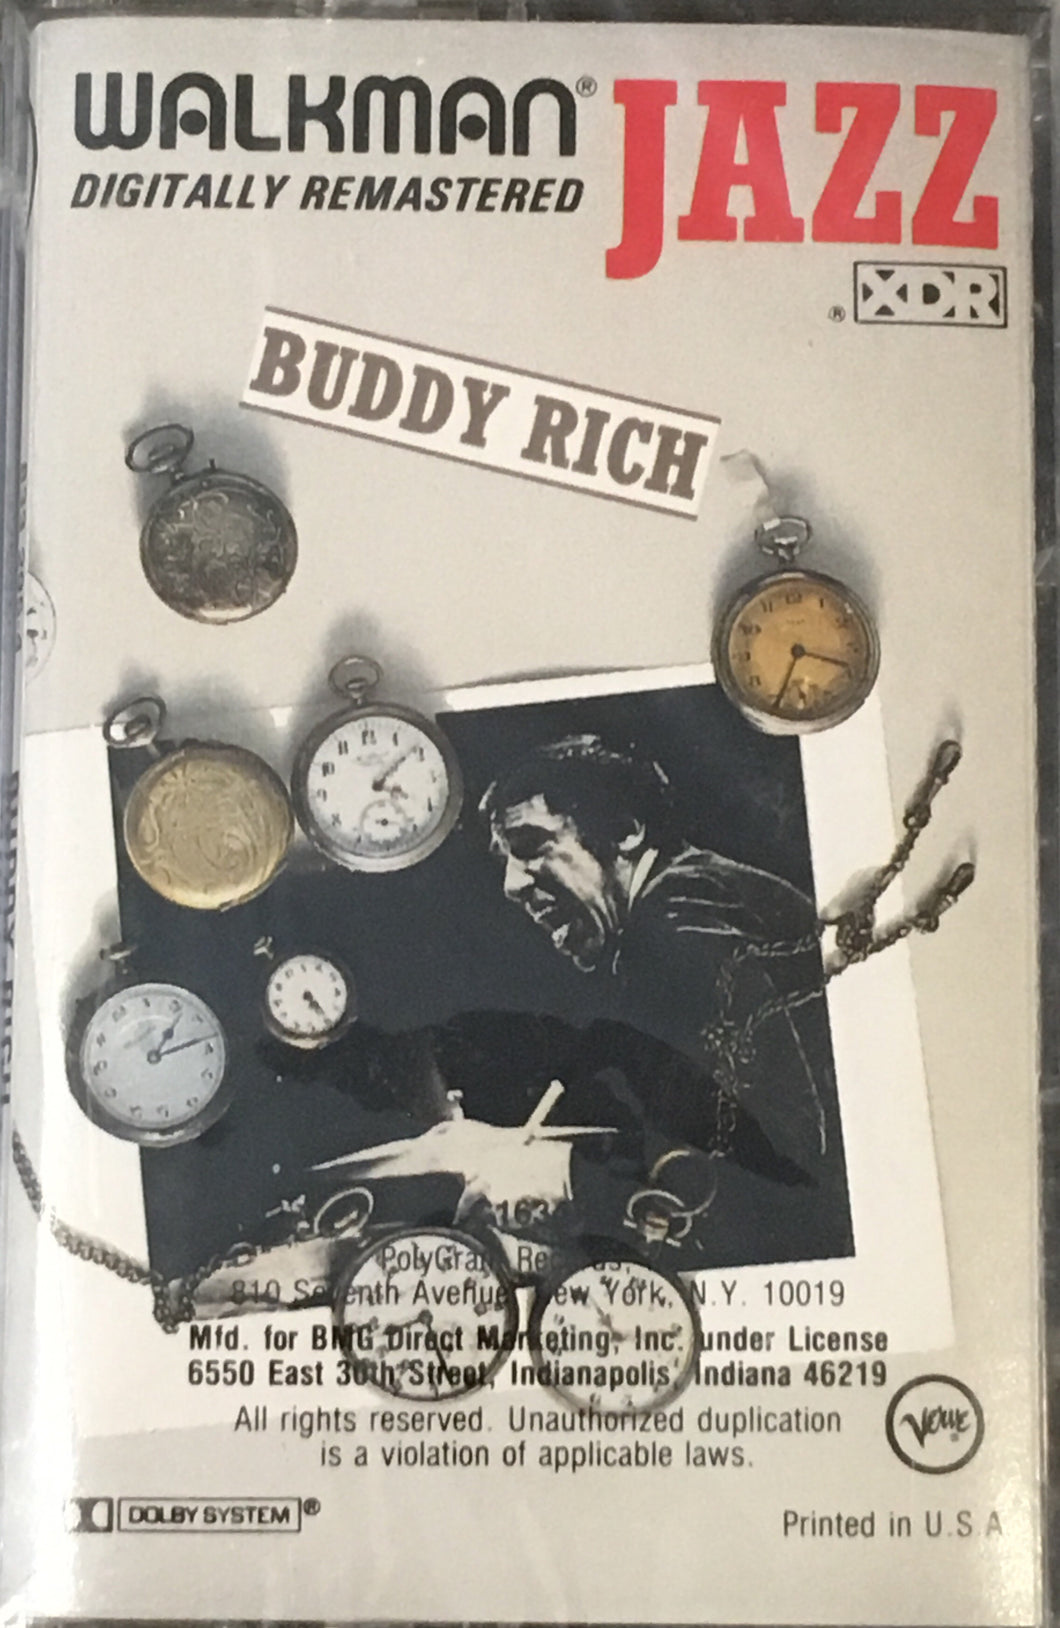 Buddy Rich Walkman Jazz Cassette